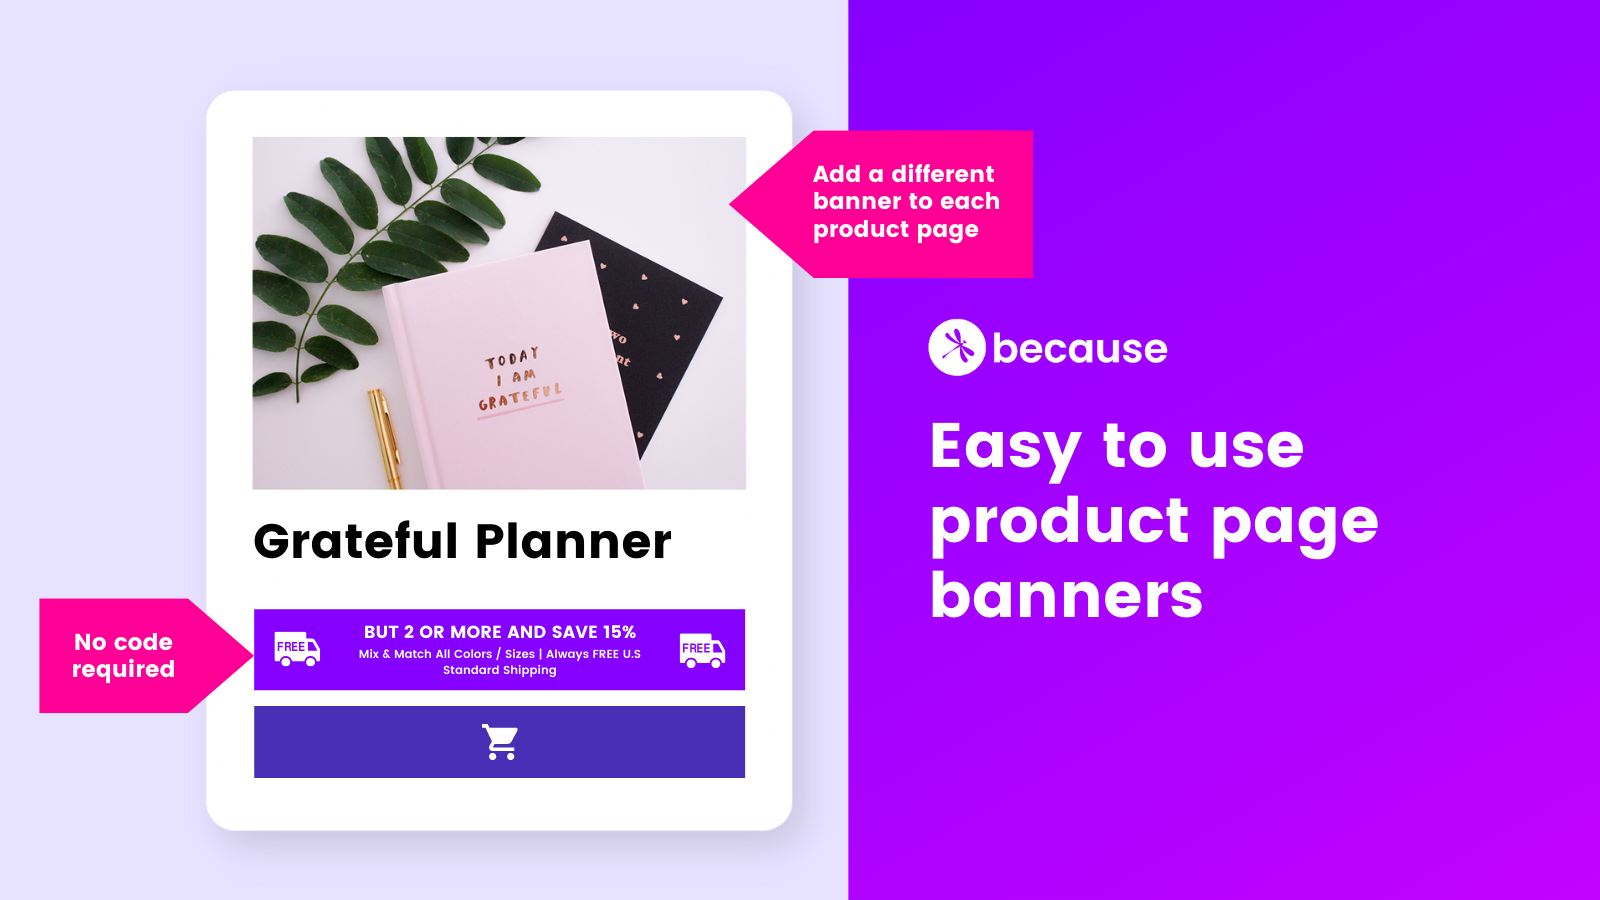 Easy to use product page banners